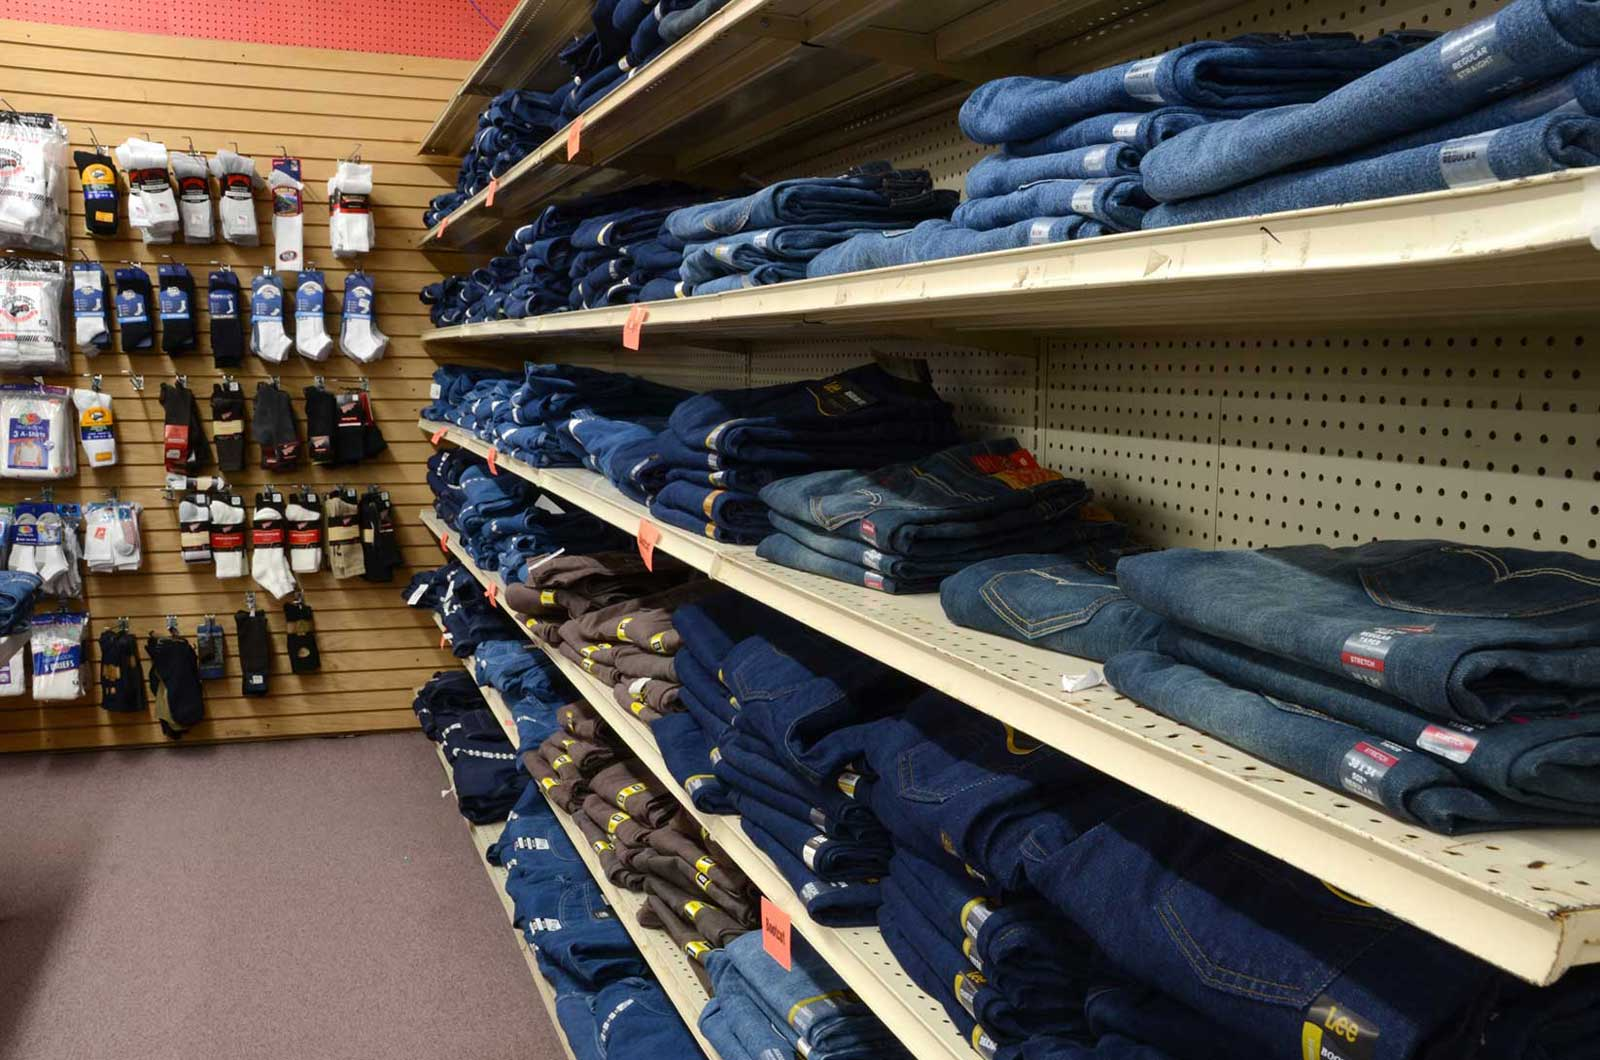 Men's Wear, Jeans and More